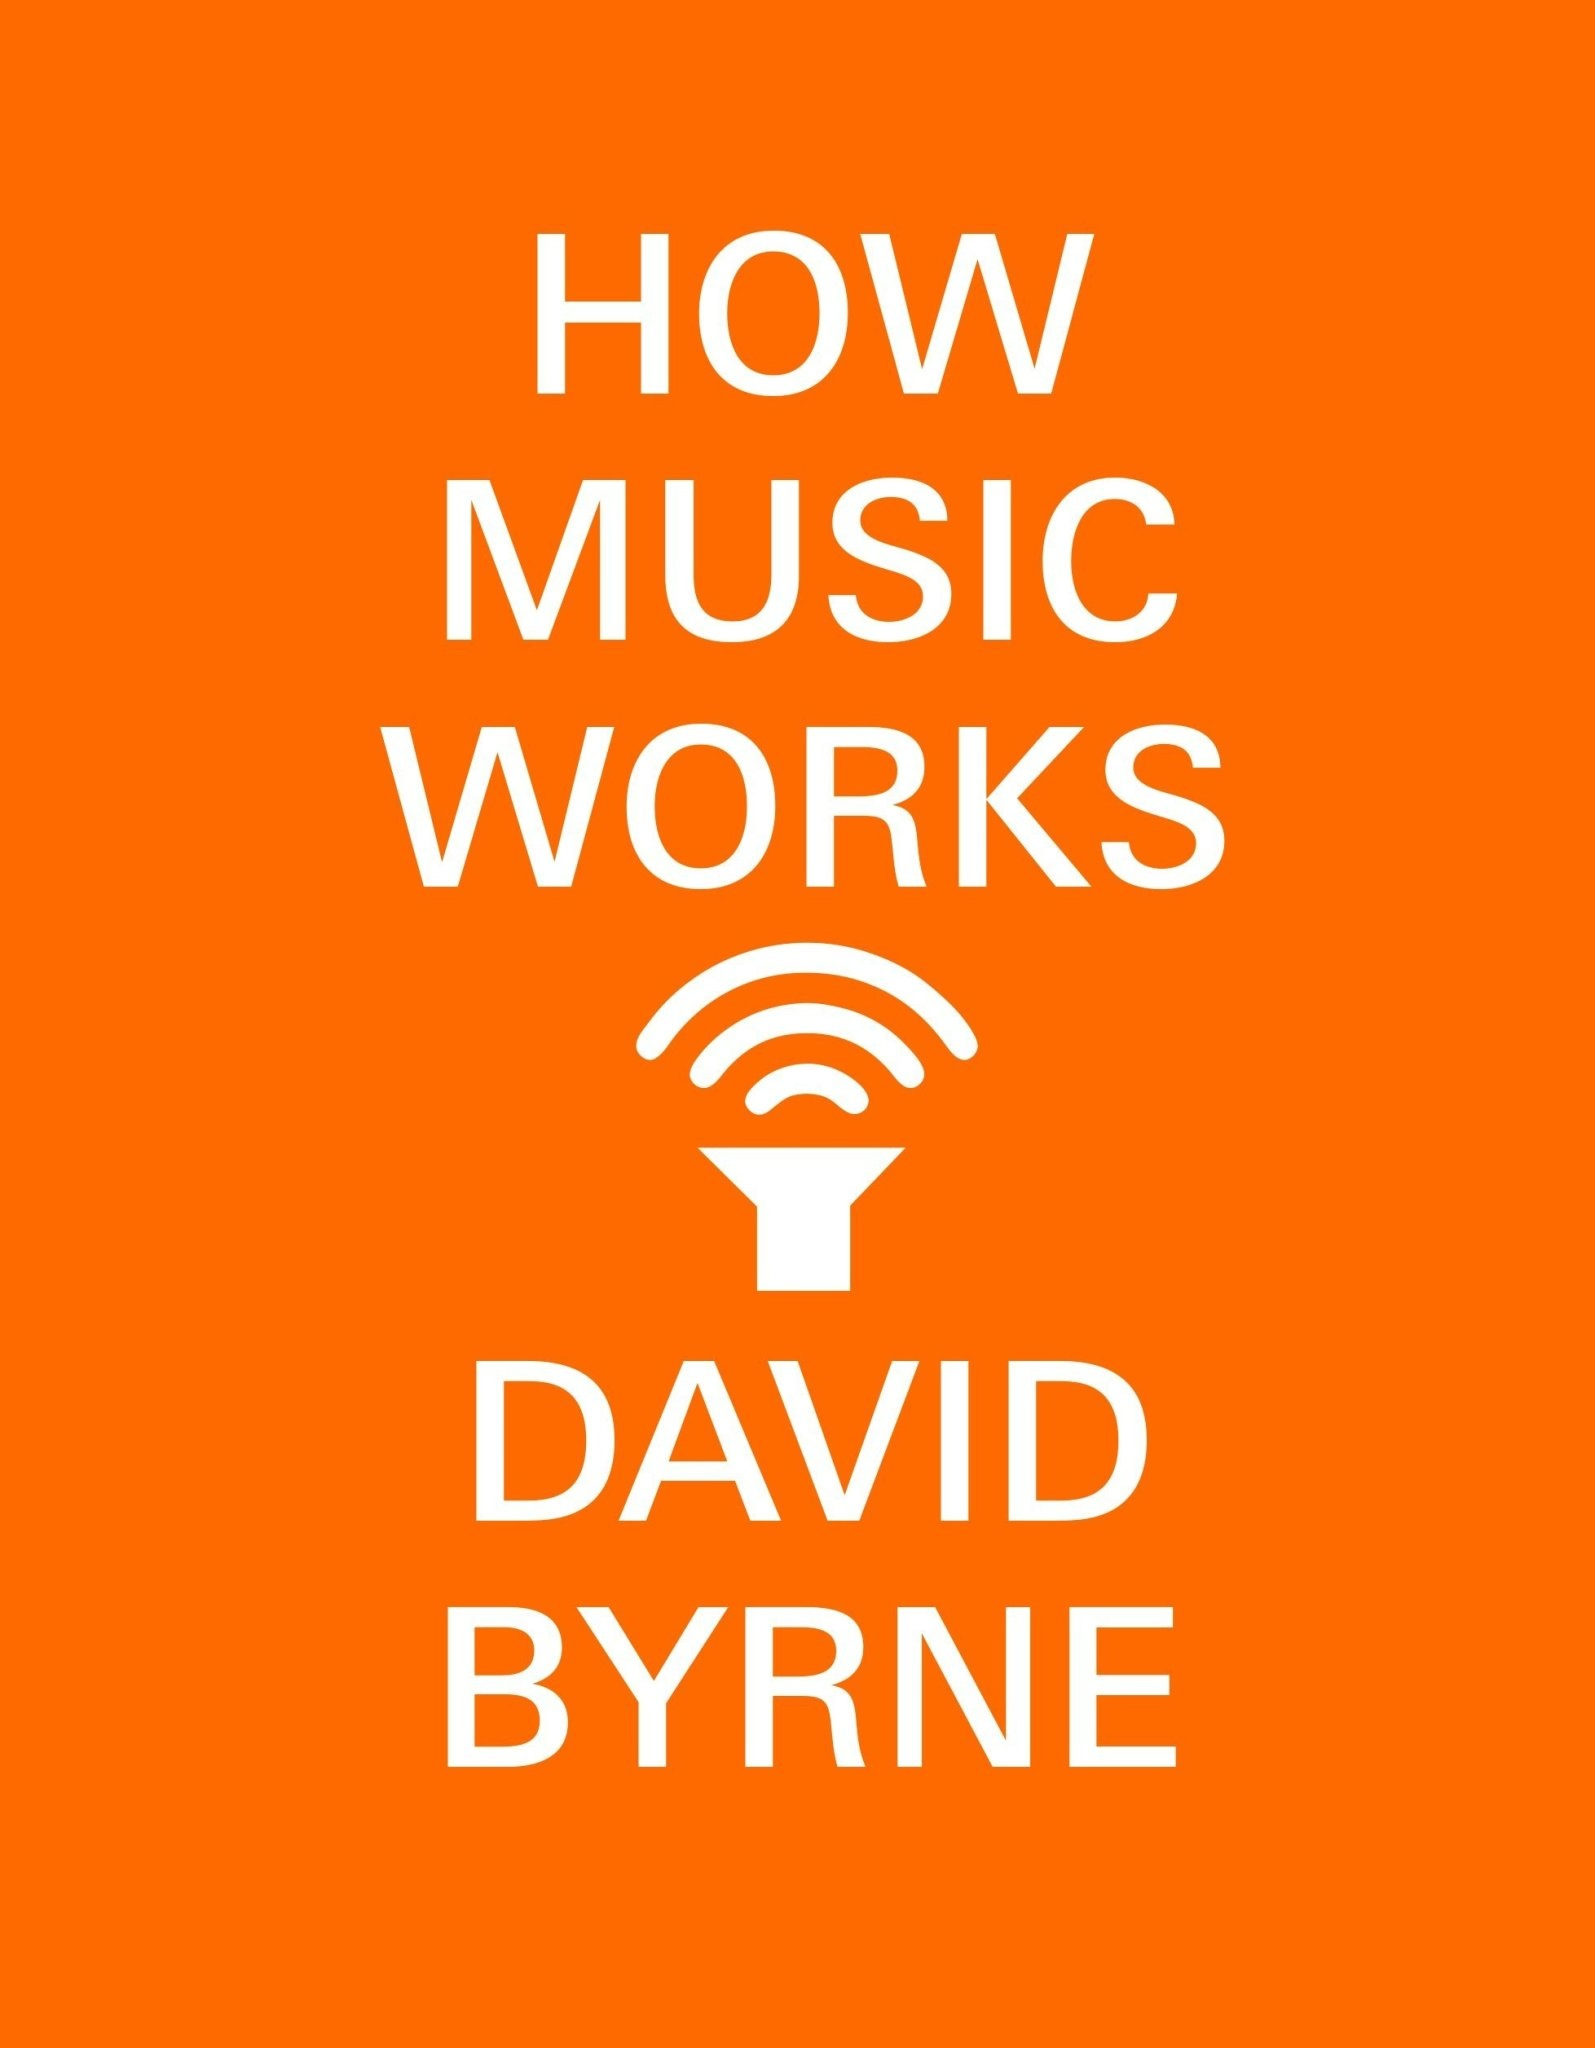 About Music How Music Works - David Byrne